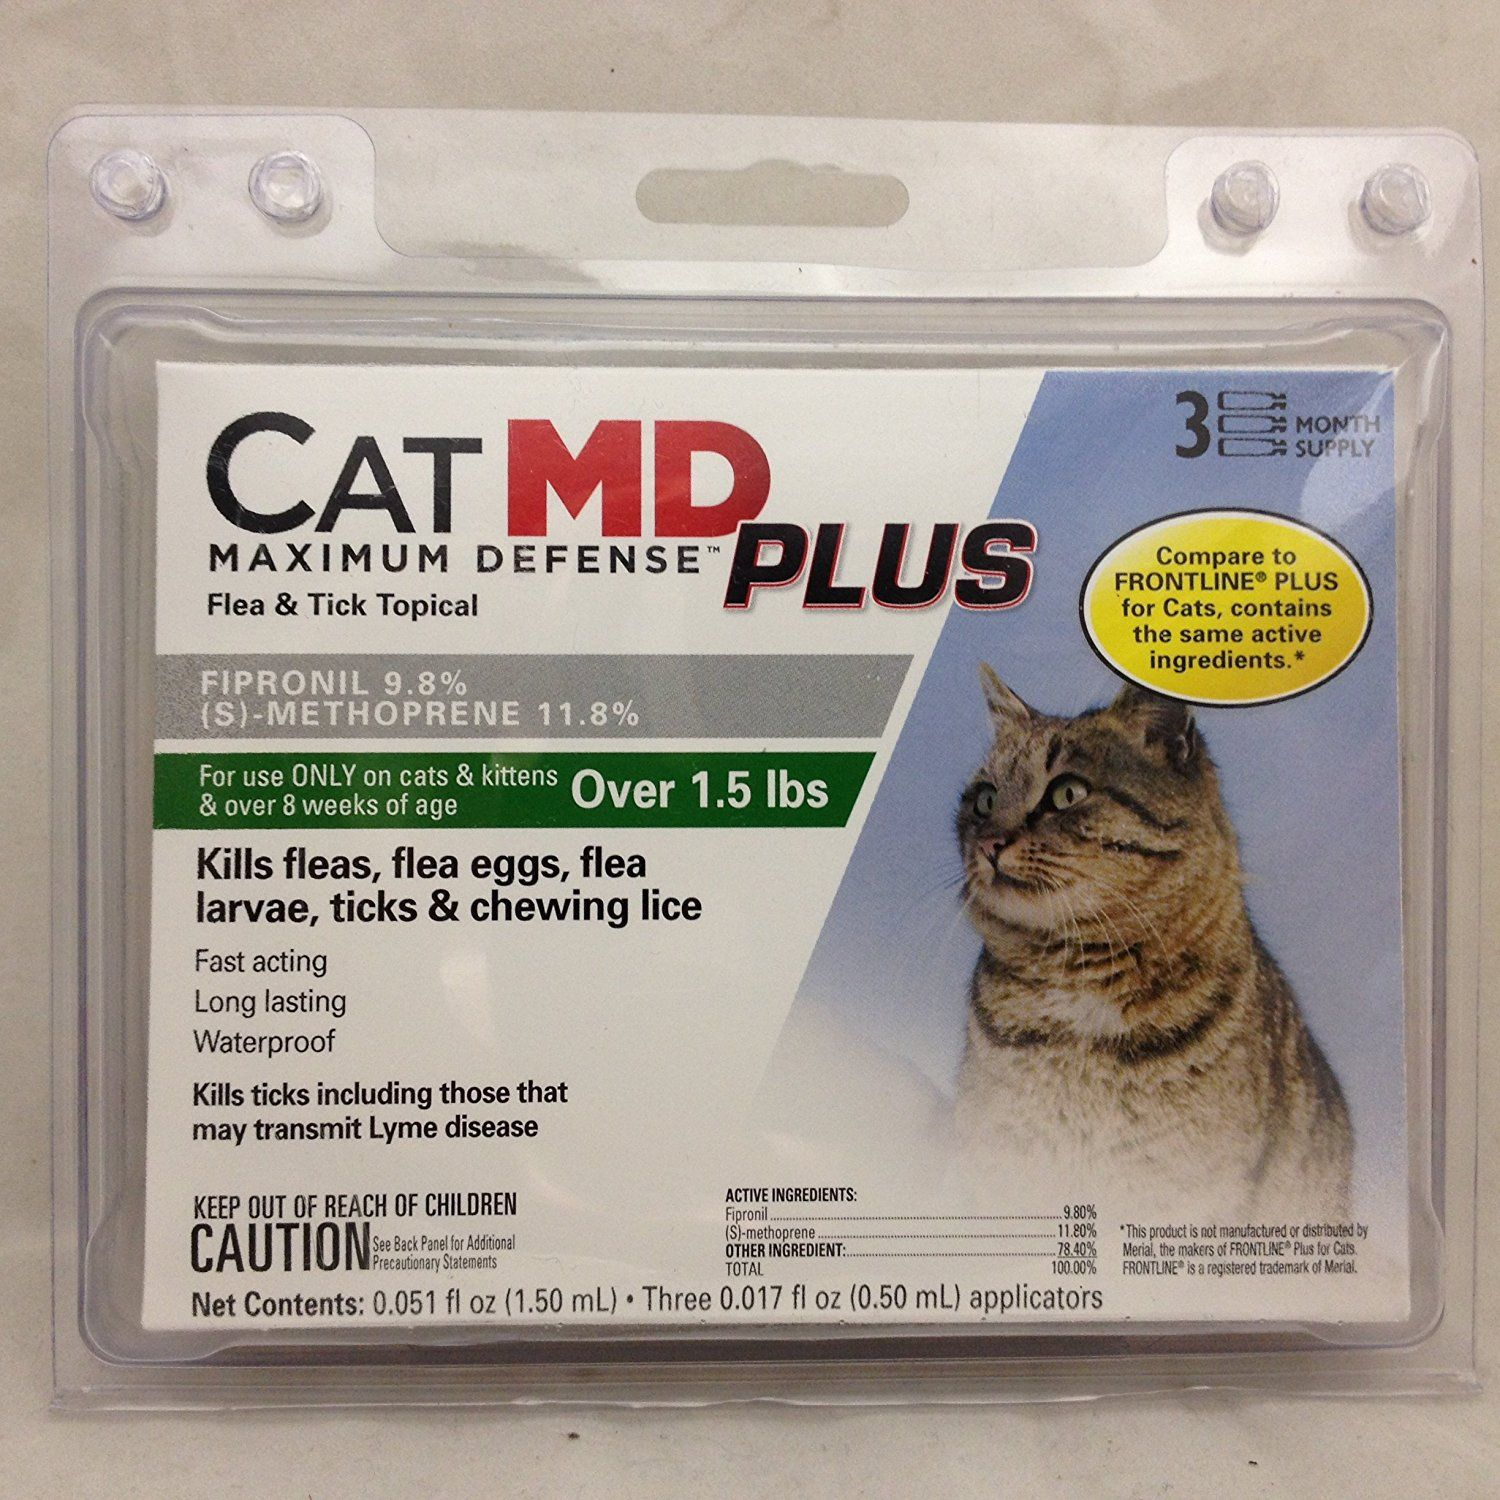 Catmd Maximum Defense Plus Flea And Tick Topical For Cats Over 1 5 Lbs 3 Month Supply Find Out More About The Grea Flea And Tick Frontline For Cats Fleas